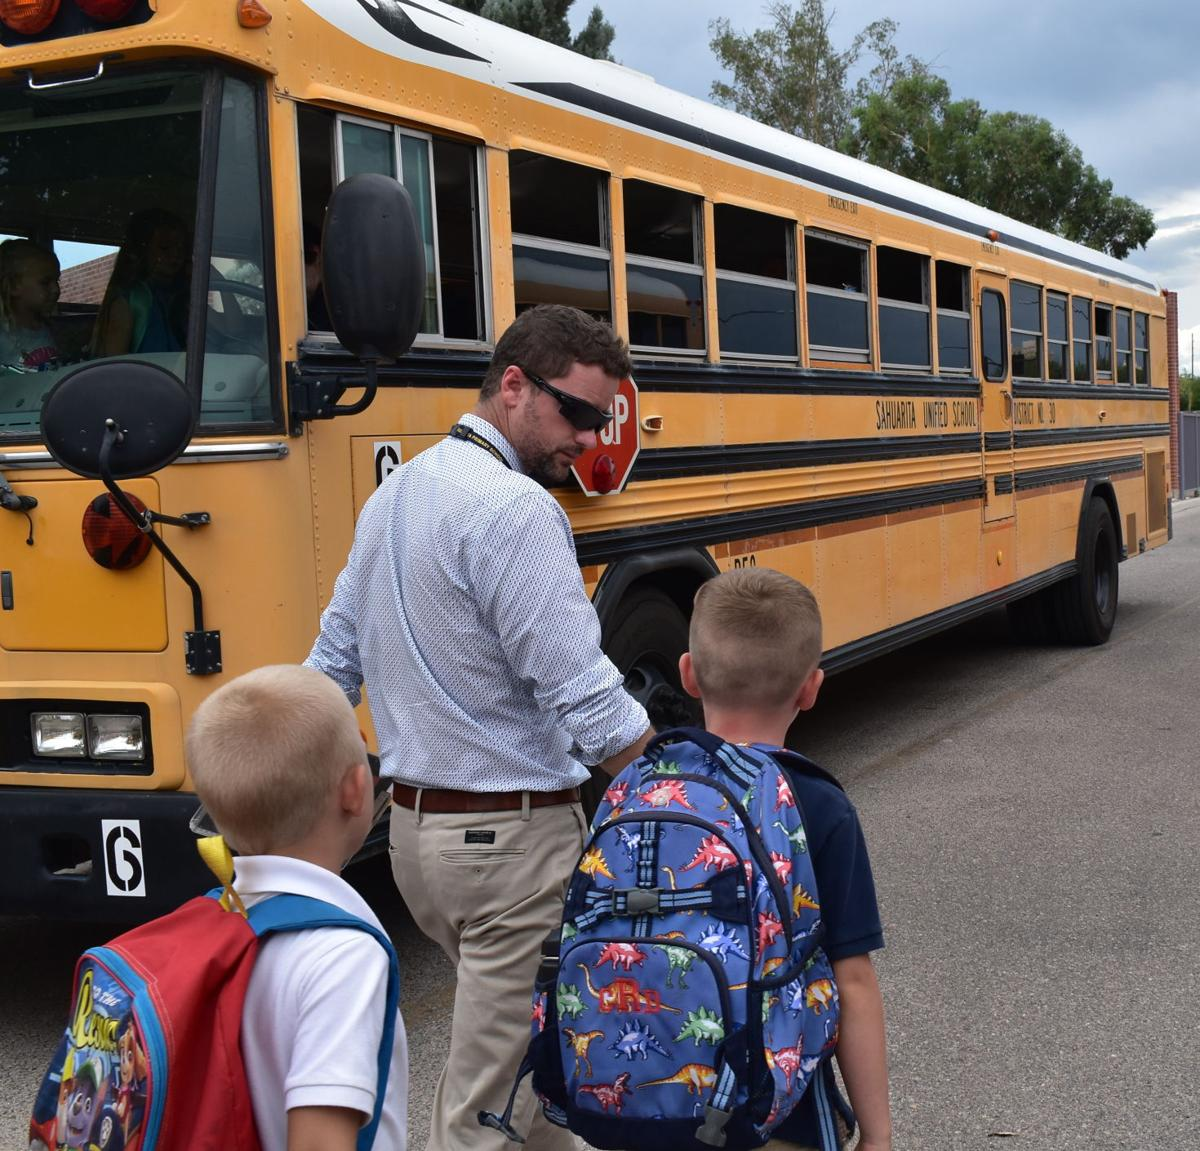 SUSD short of bus drivers, others filling in | Local News